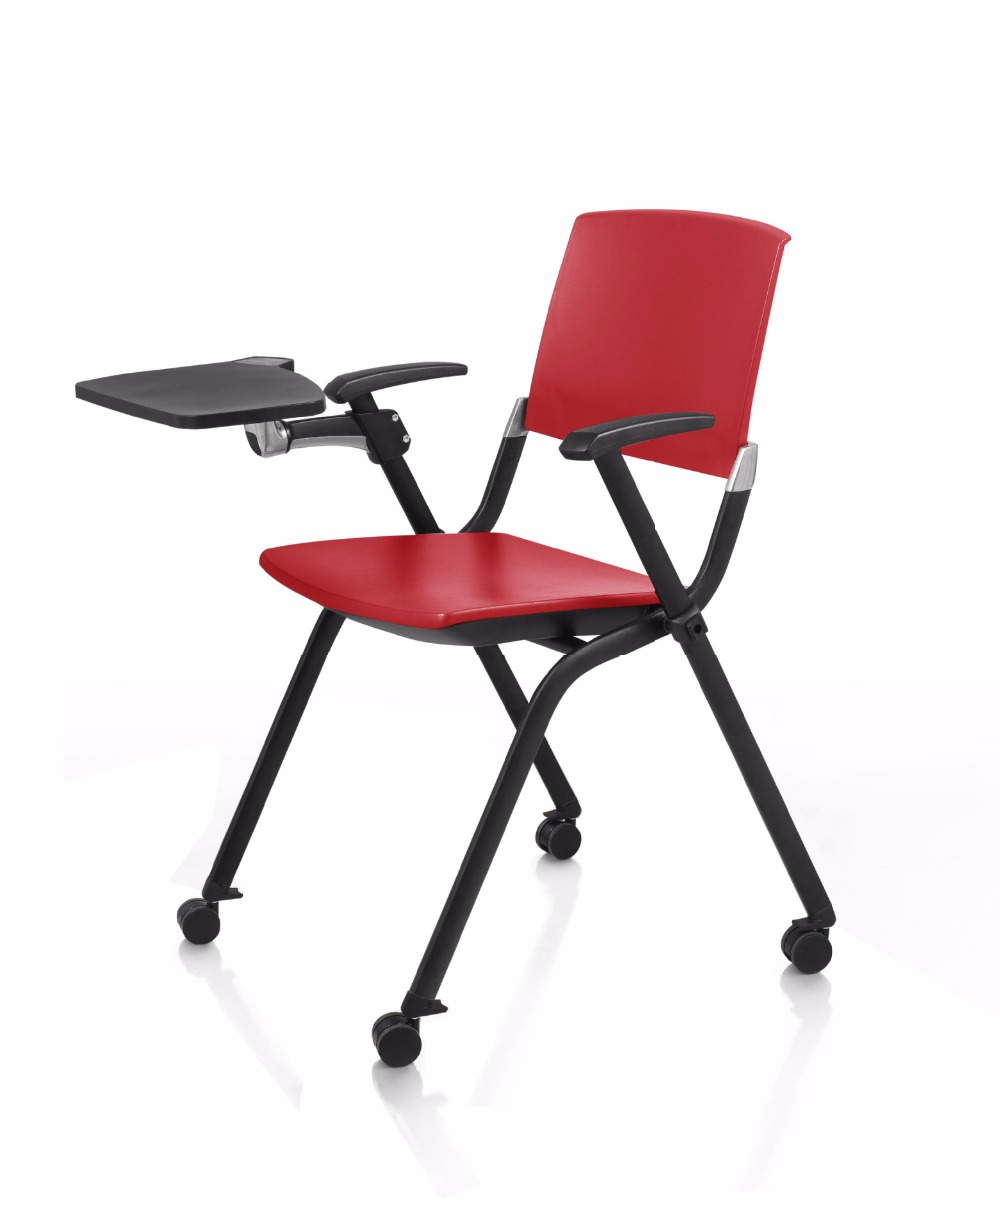 Conference Chair Commercial Furniture Office Furniture folding chair with writing board office chair training chairs 572*602*830Conference Chair Commercial Furniture Office Furniture folding chair with writing board office chair training chairs 572*602*830